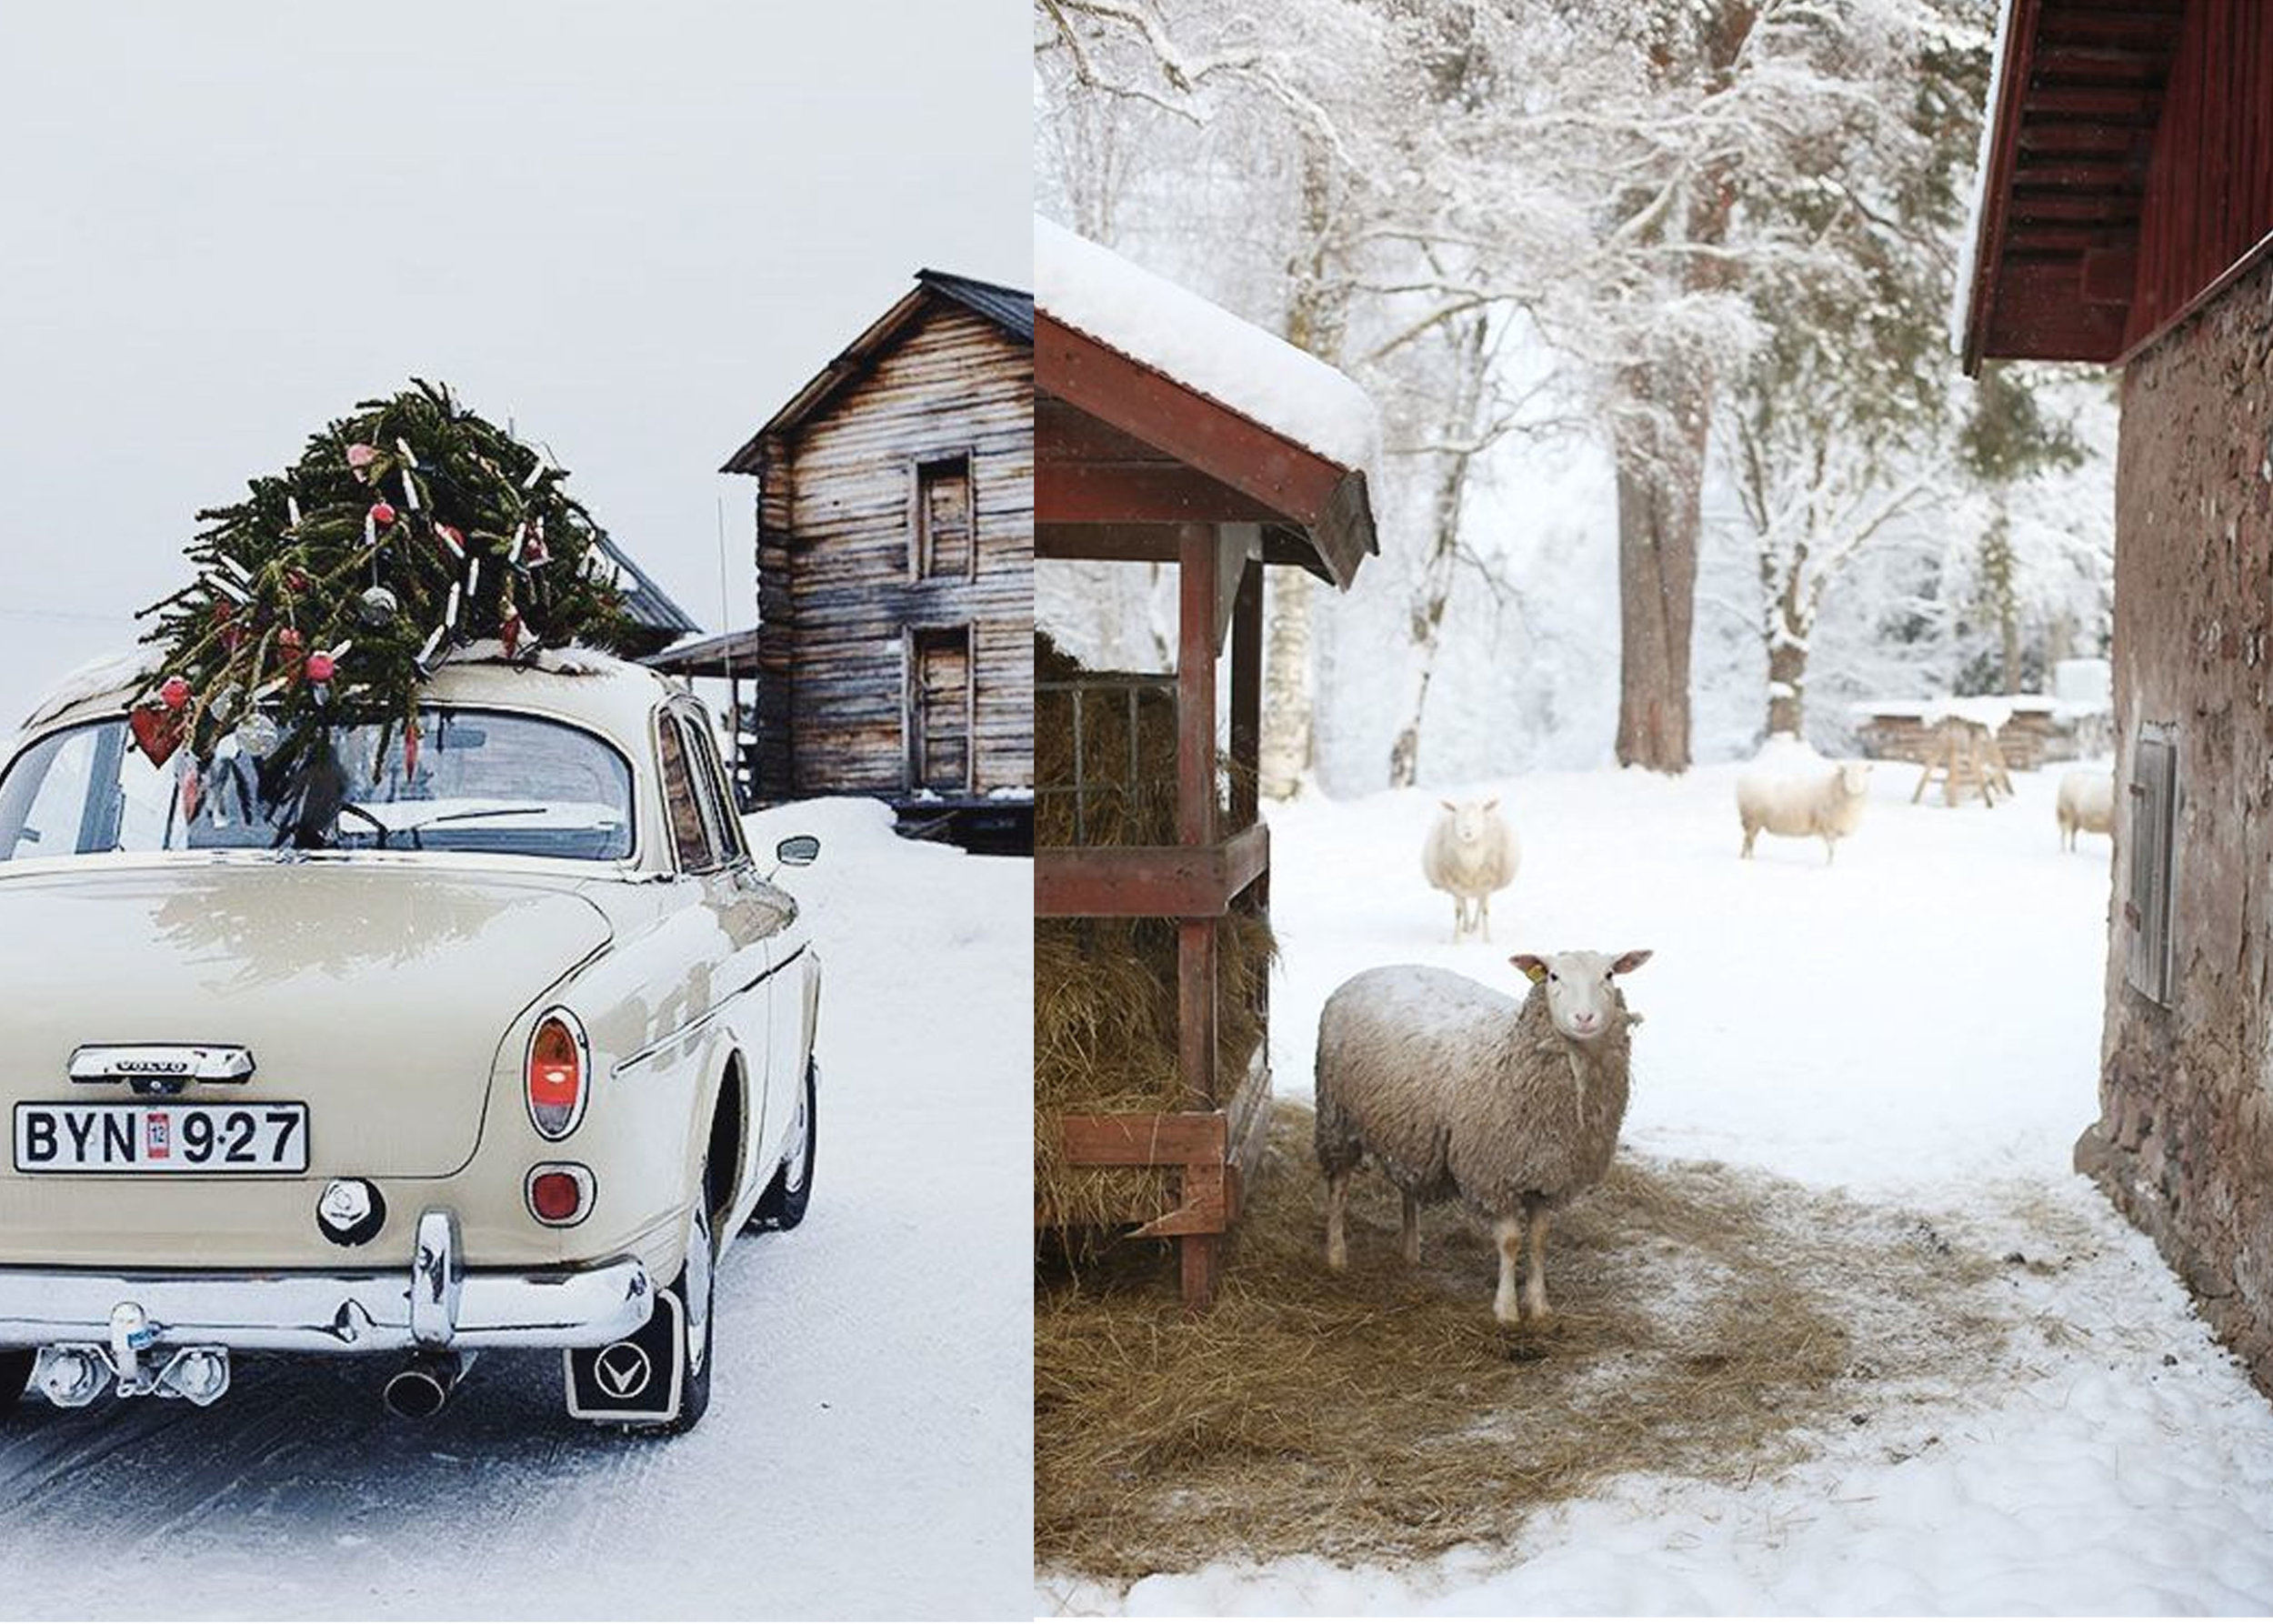 image car and tree via  This is Glamorous  - image with sheep via  Pinterest